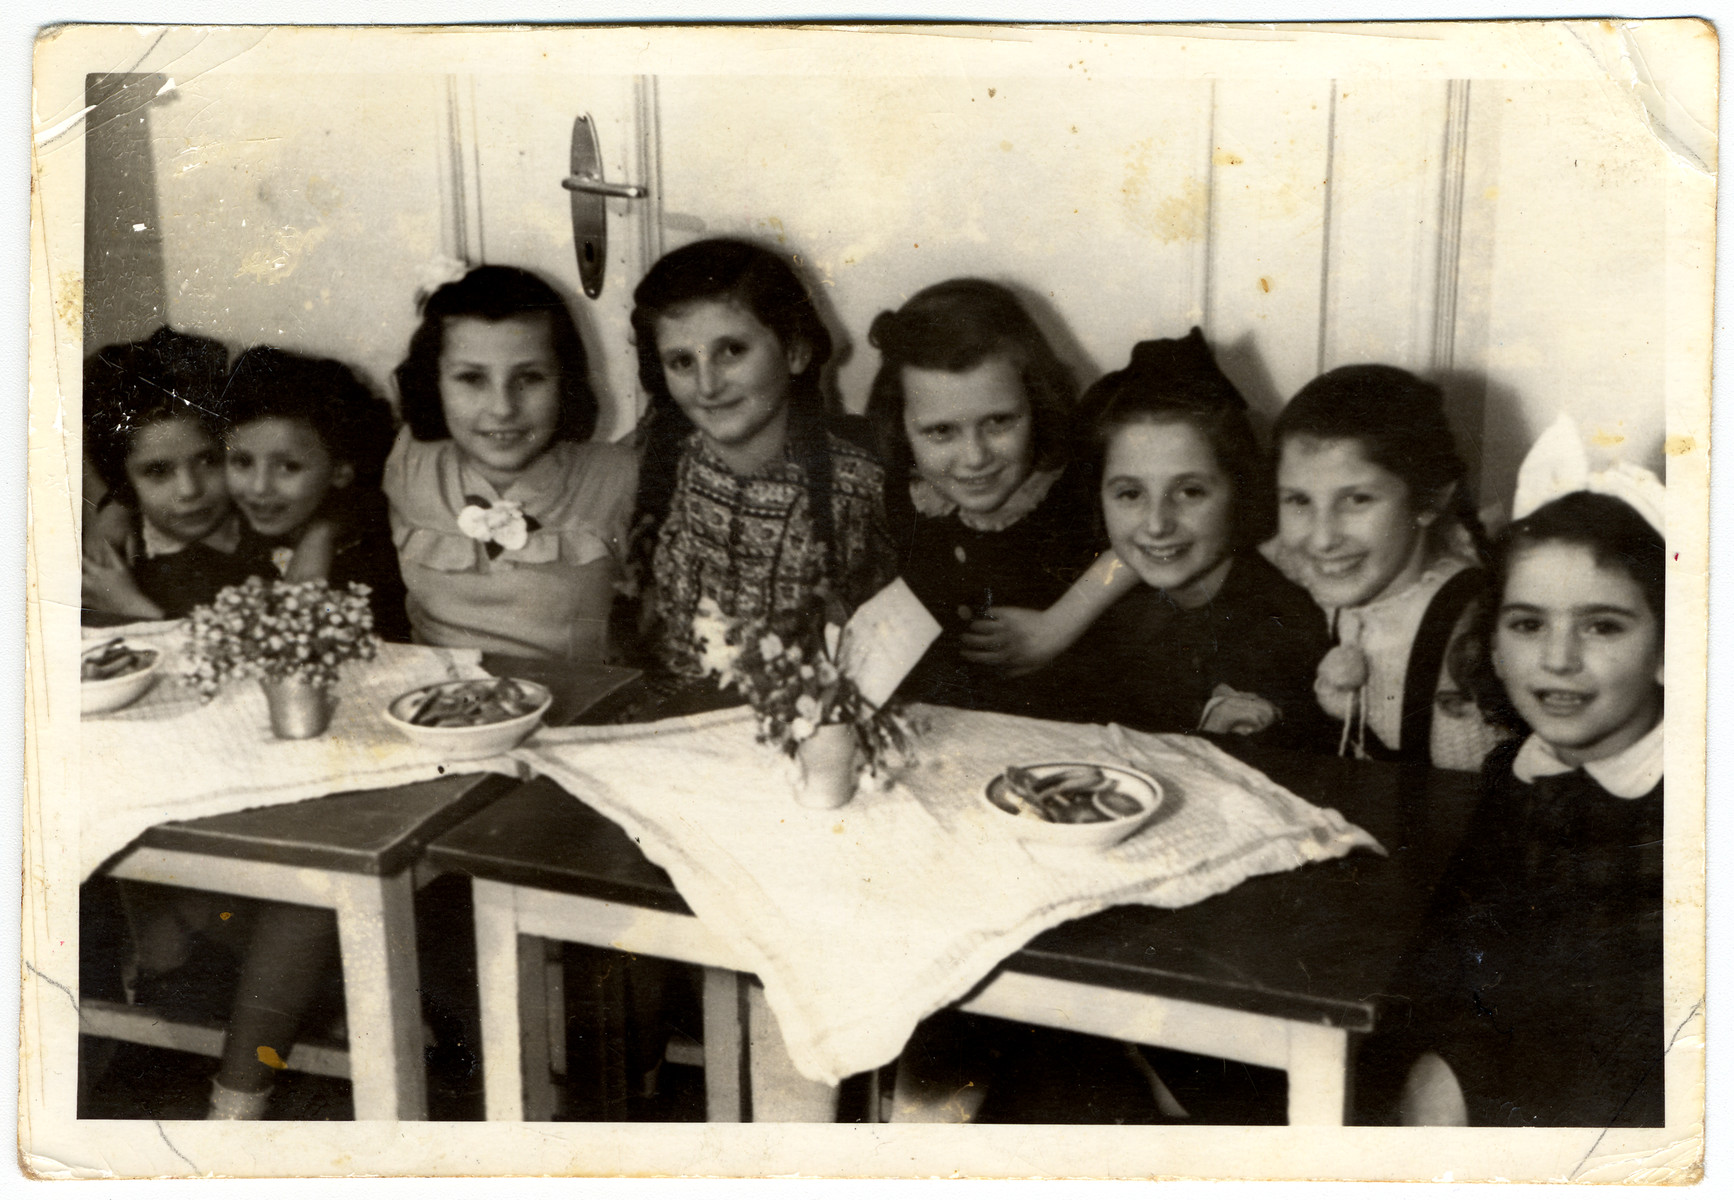 School girls sit by a table to celebrate their teacher's wedding in the Feldafing displaced person's camp.  Among those pictured are Miriam (second from left), Rutak Kron (third from left), Rifka Lischitz (fourth from left), Ada Rosenberg (fifth from left) and Leah (sixth from left).